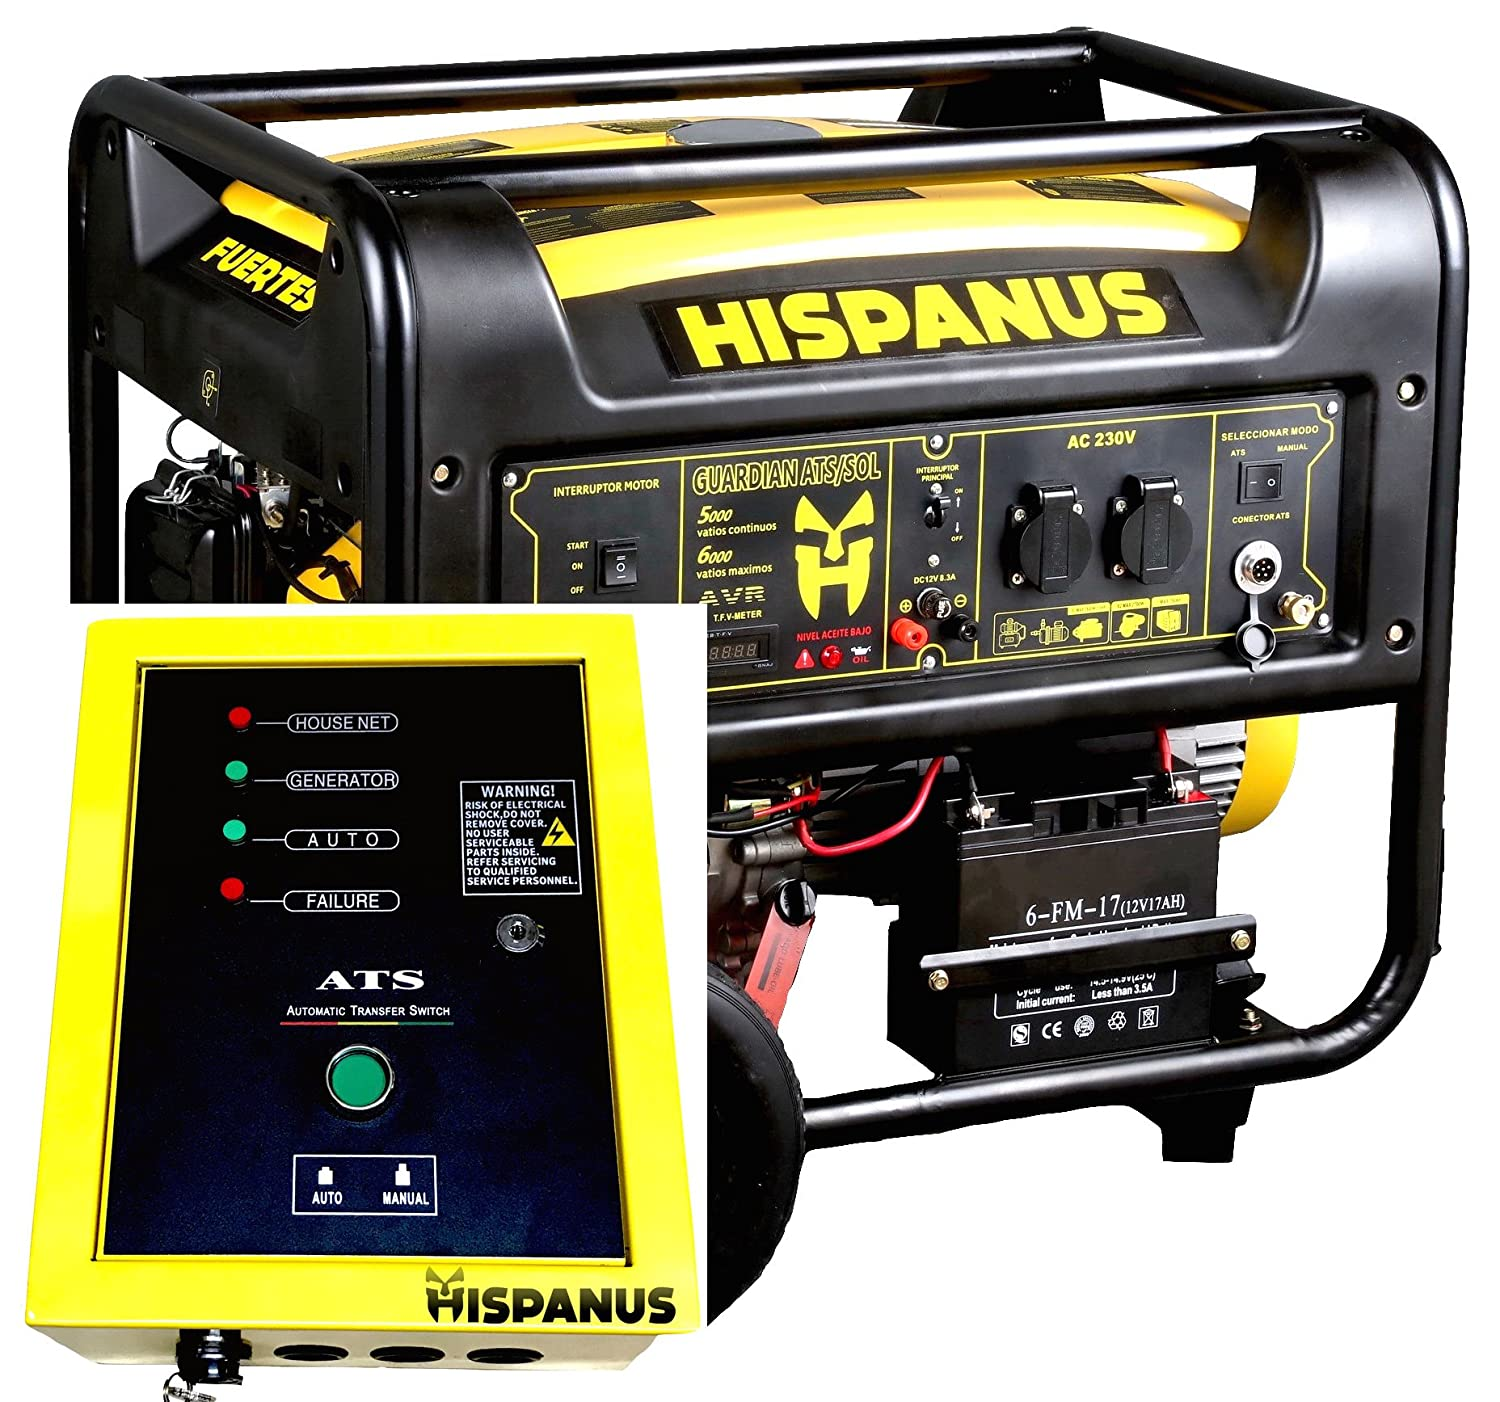 HISPANUS GUARDIAN ATS SOL wp GENERADOR DE GASOLINA